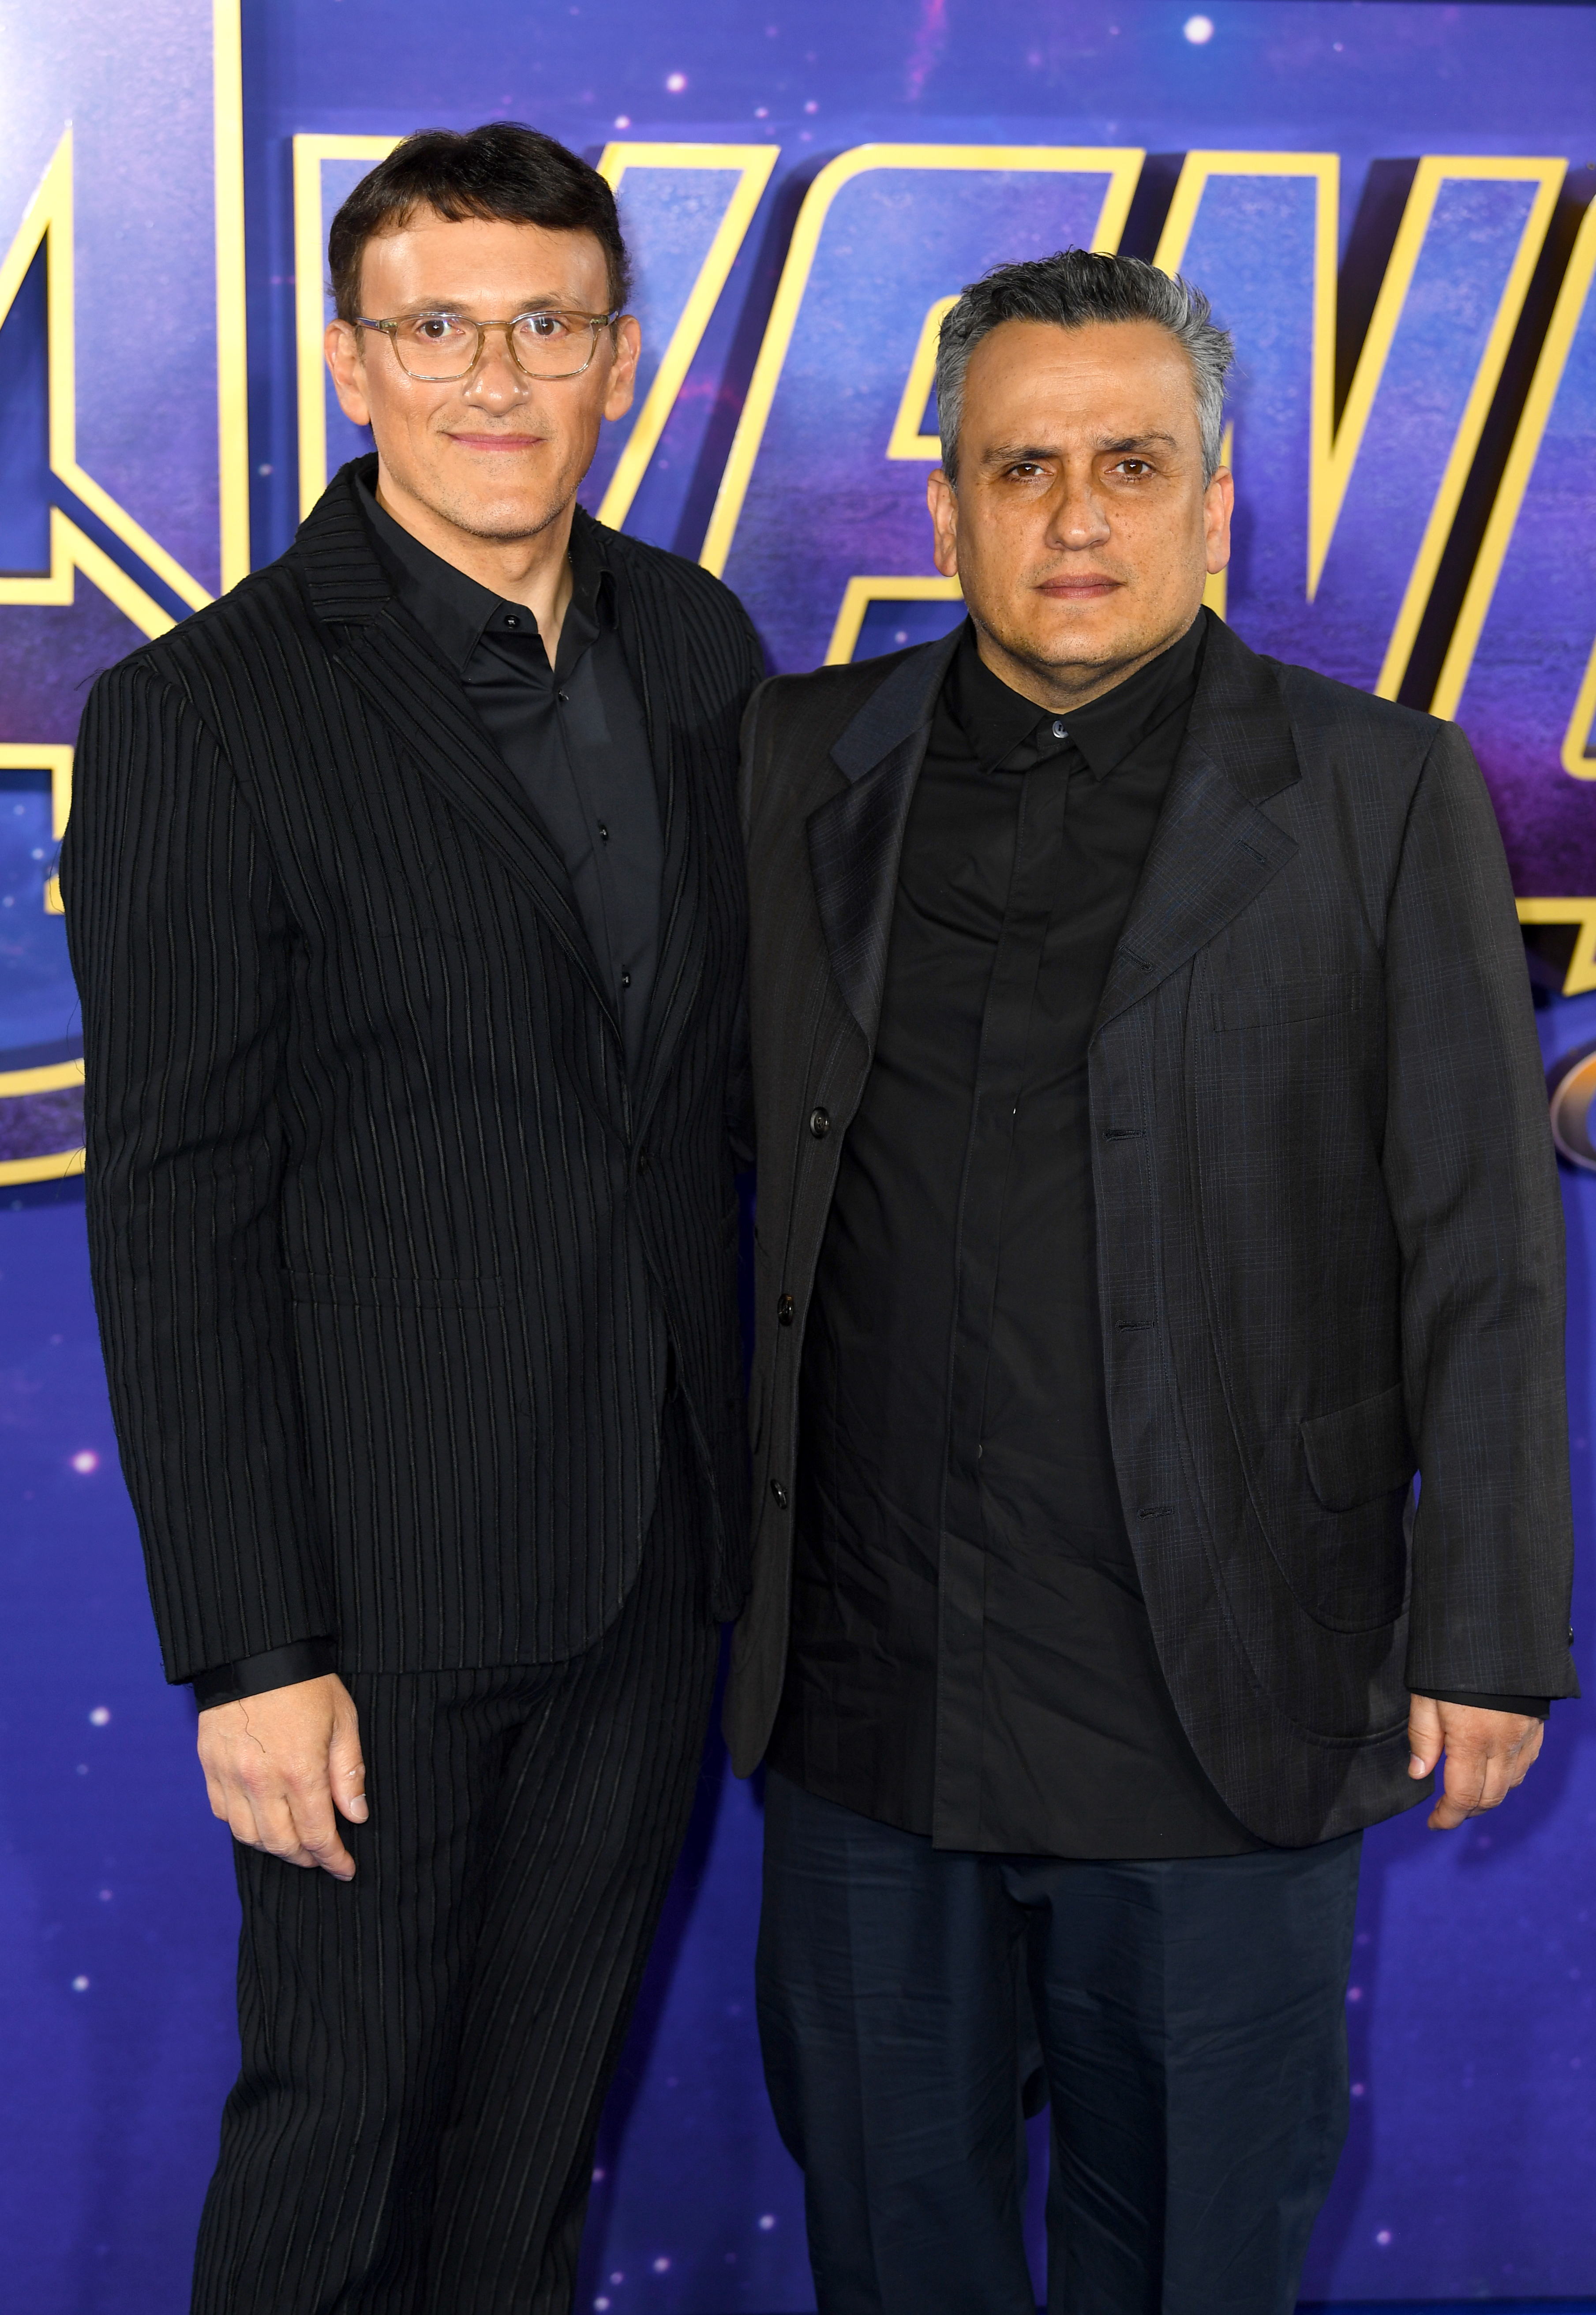 The Russo brothers. Credit: PA